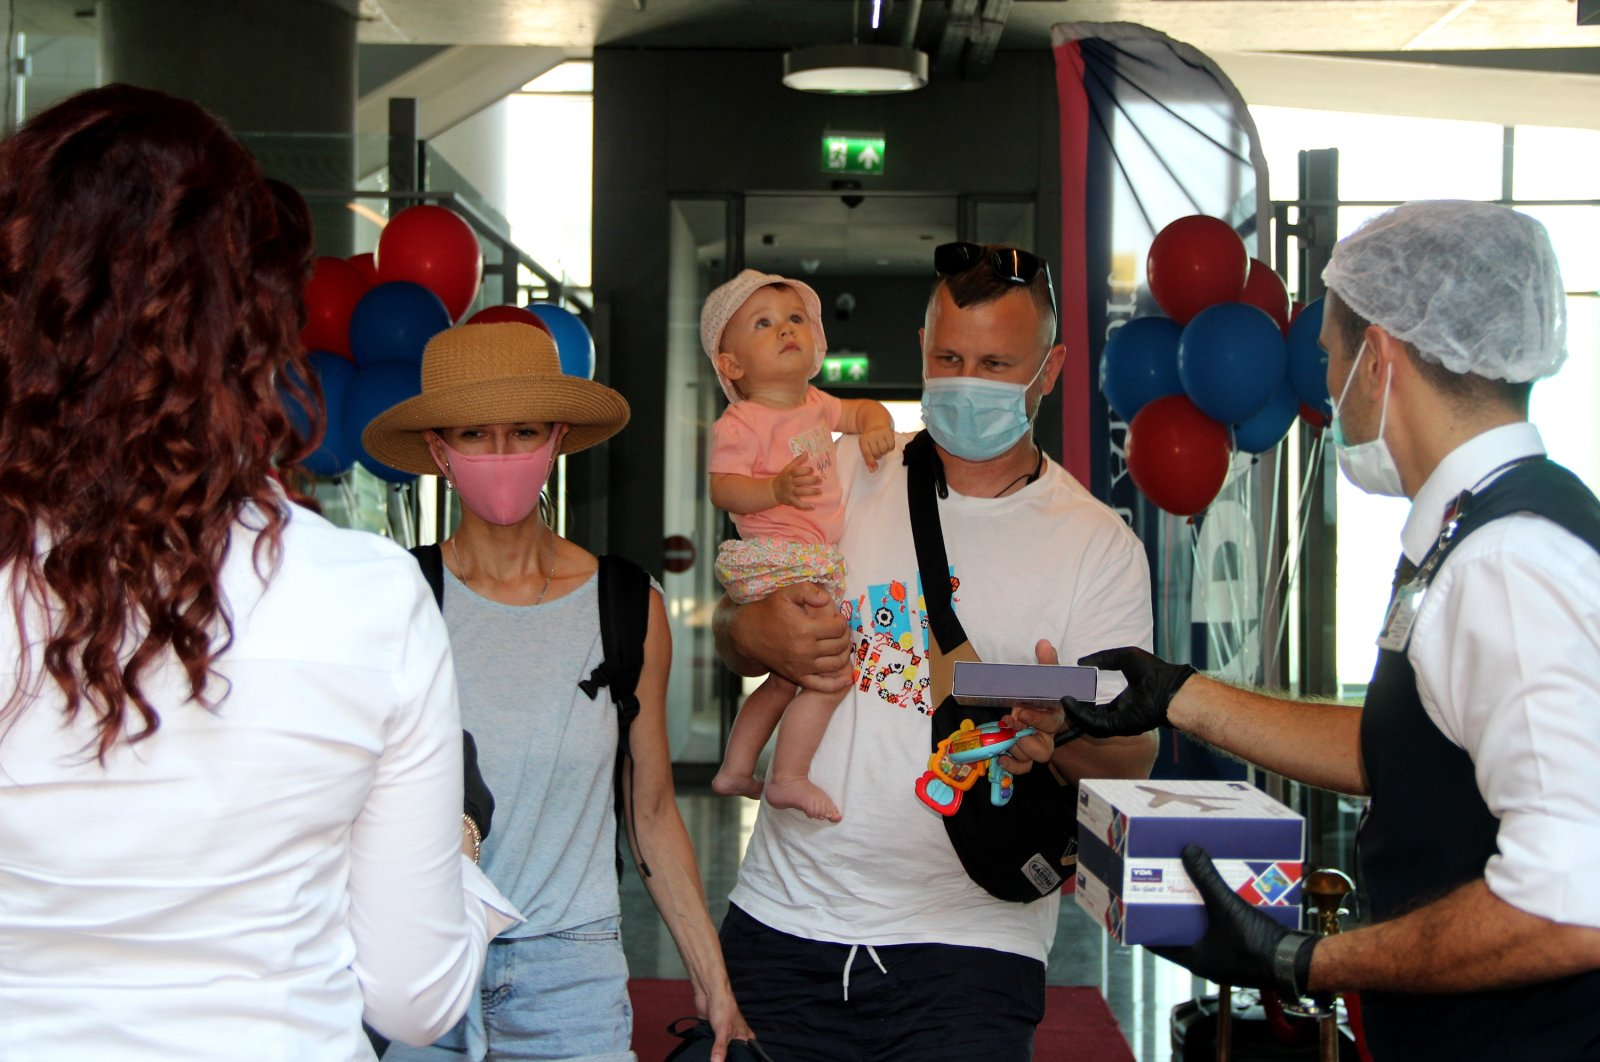 The season's first tour group from Ukraine arrives in Dalaman, in the western Muğla province, Turkey, July 4, 2020. (IHA Photo)